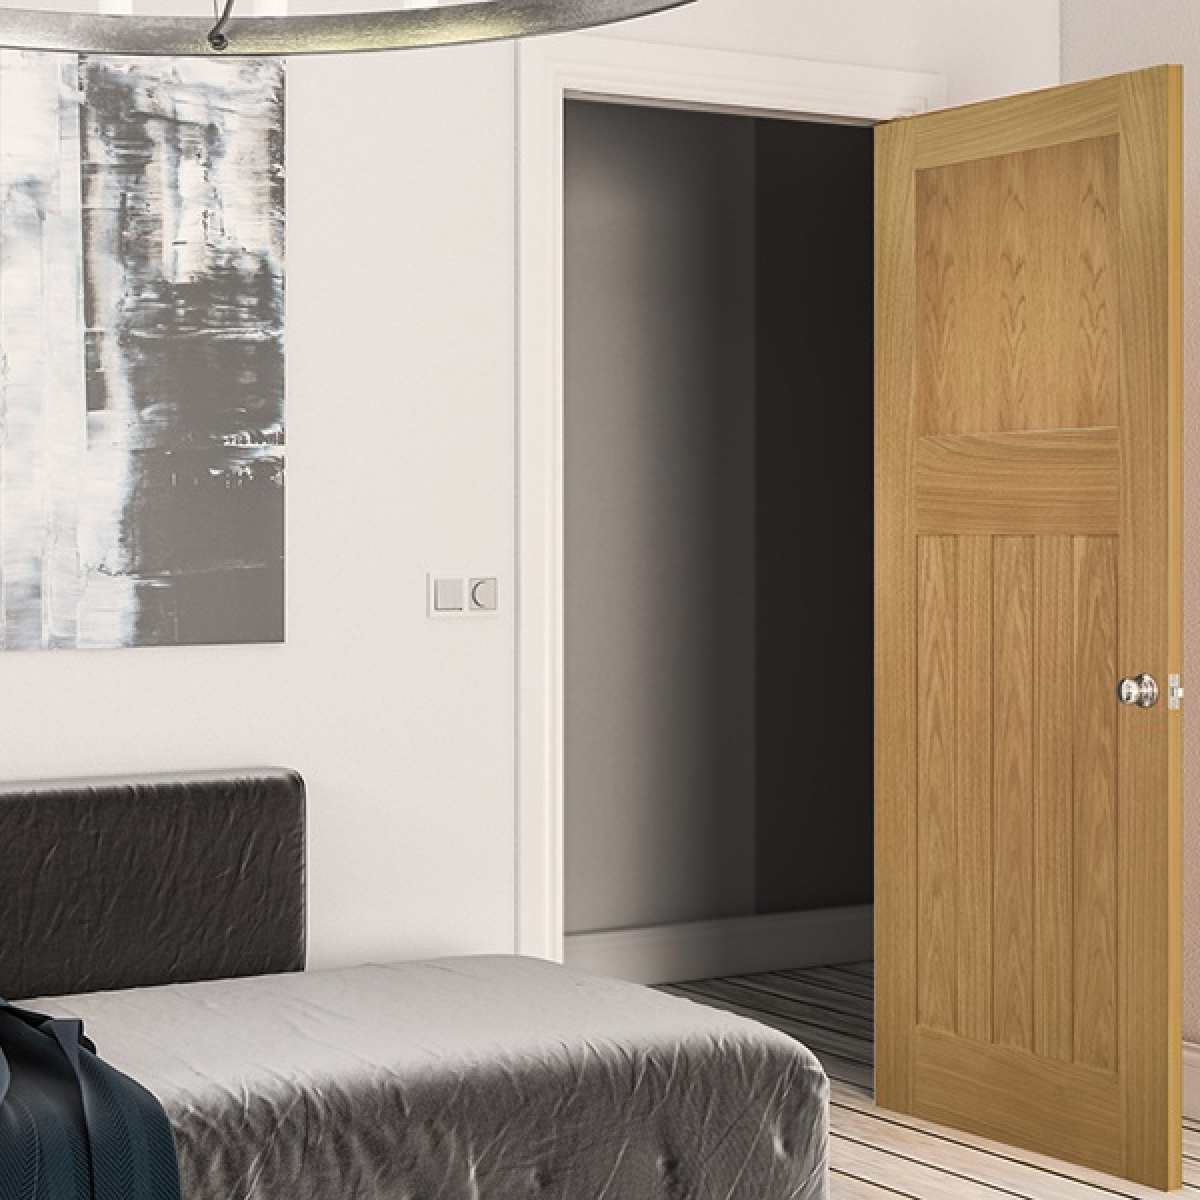 Cambridge oak lifestyle websters Image by Websters Timber